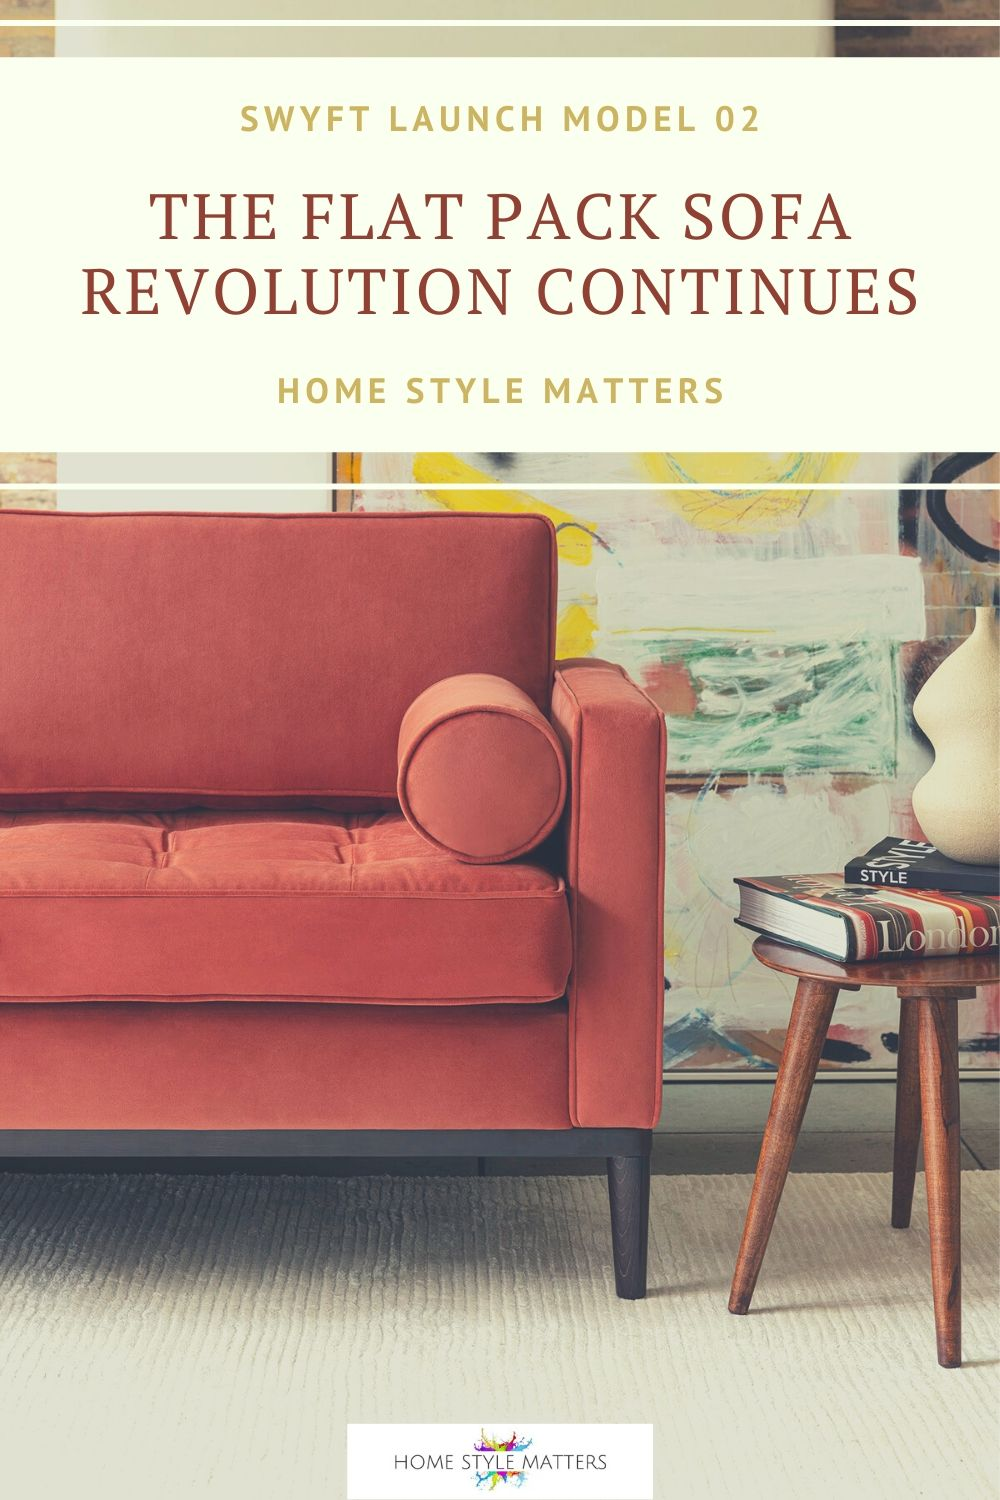 Swyft flat pack sofas have launched Model 02 and we think you're going to love it! The Mid-century look is back and Model 02 is leading the renaissance.